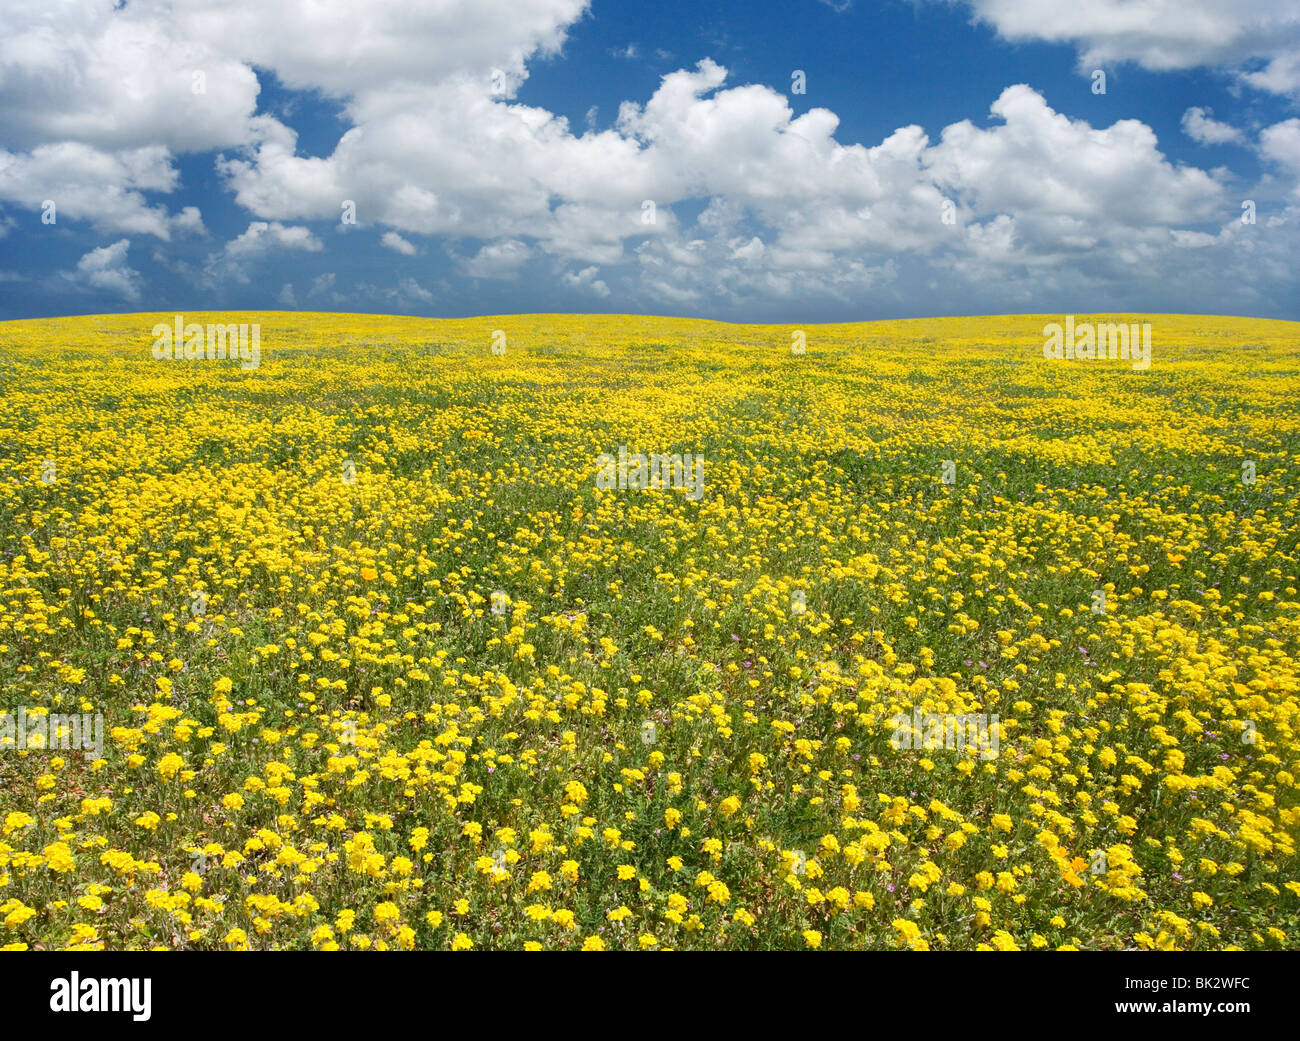 A large field of yellow wildflowers that goes on forever. The photographer retouched the horizon line and sky. - Stock Image